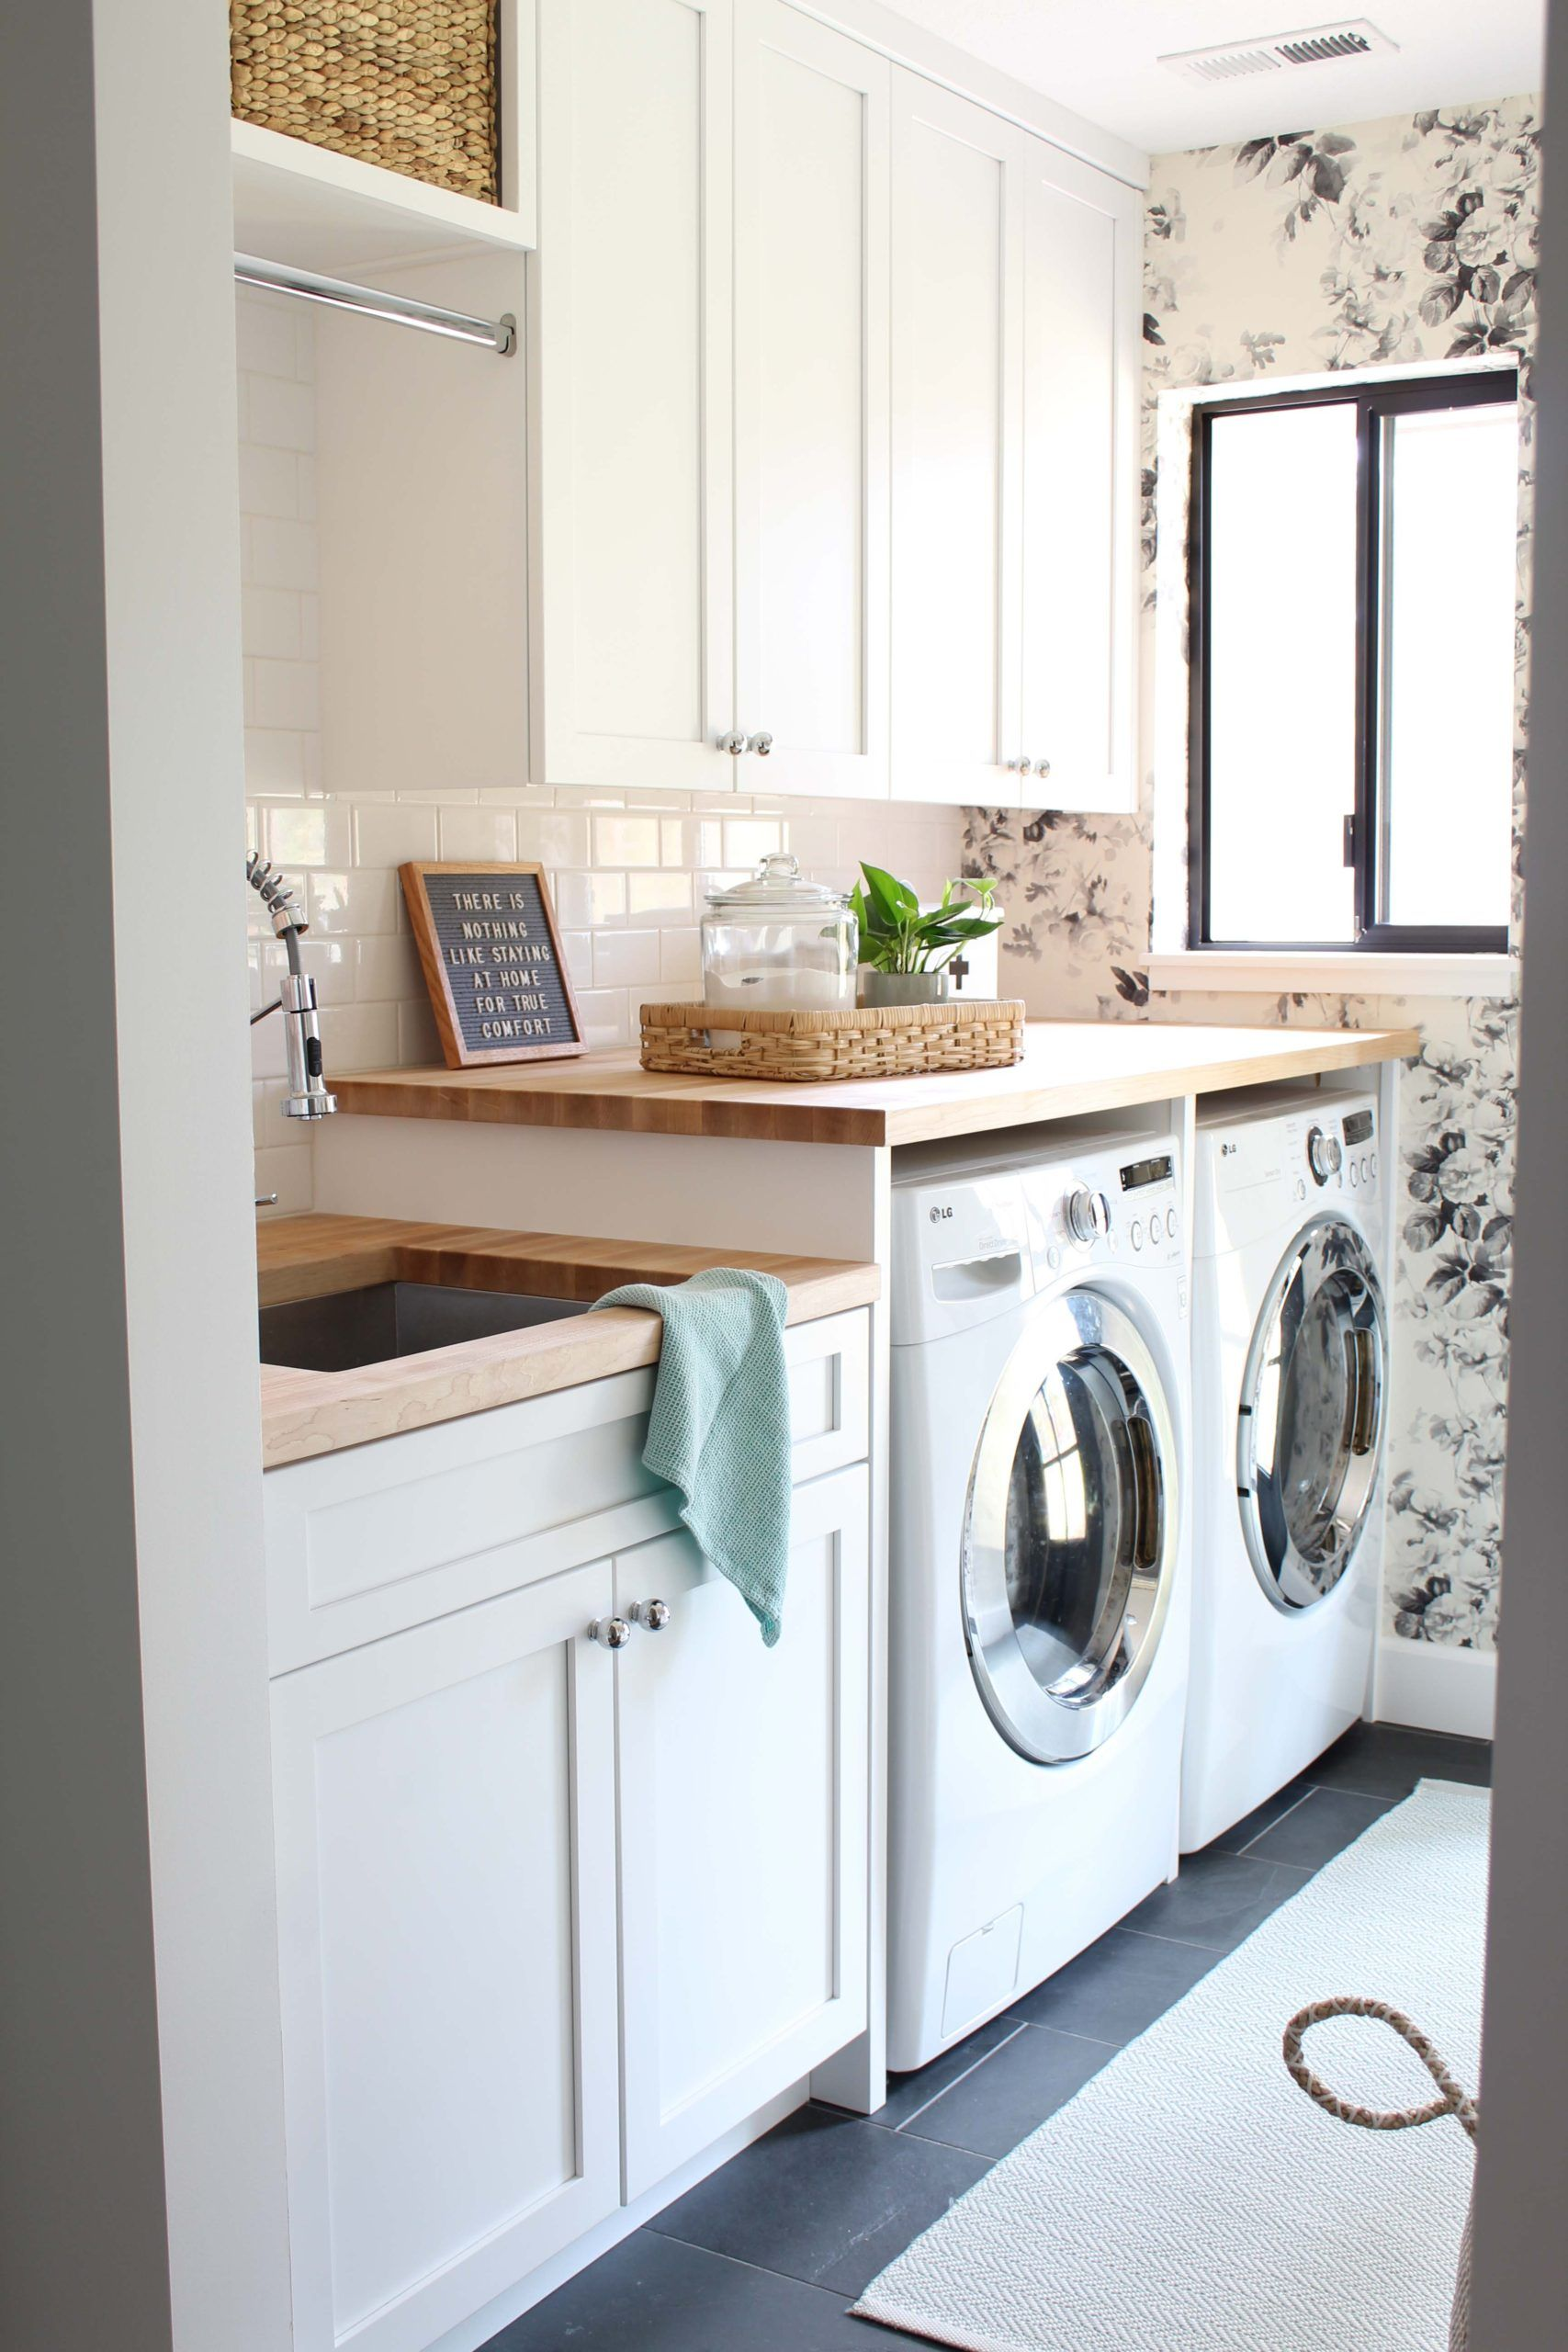 Modern Floral Laundry Room Makeover In 2020 Laundry Room Makeover Room Makeover Laundry Room